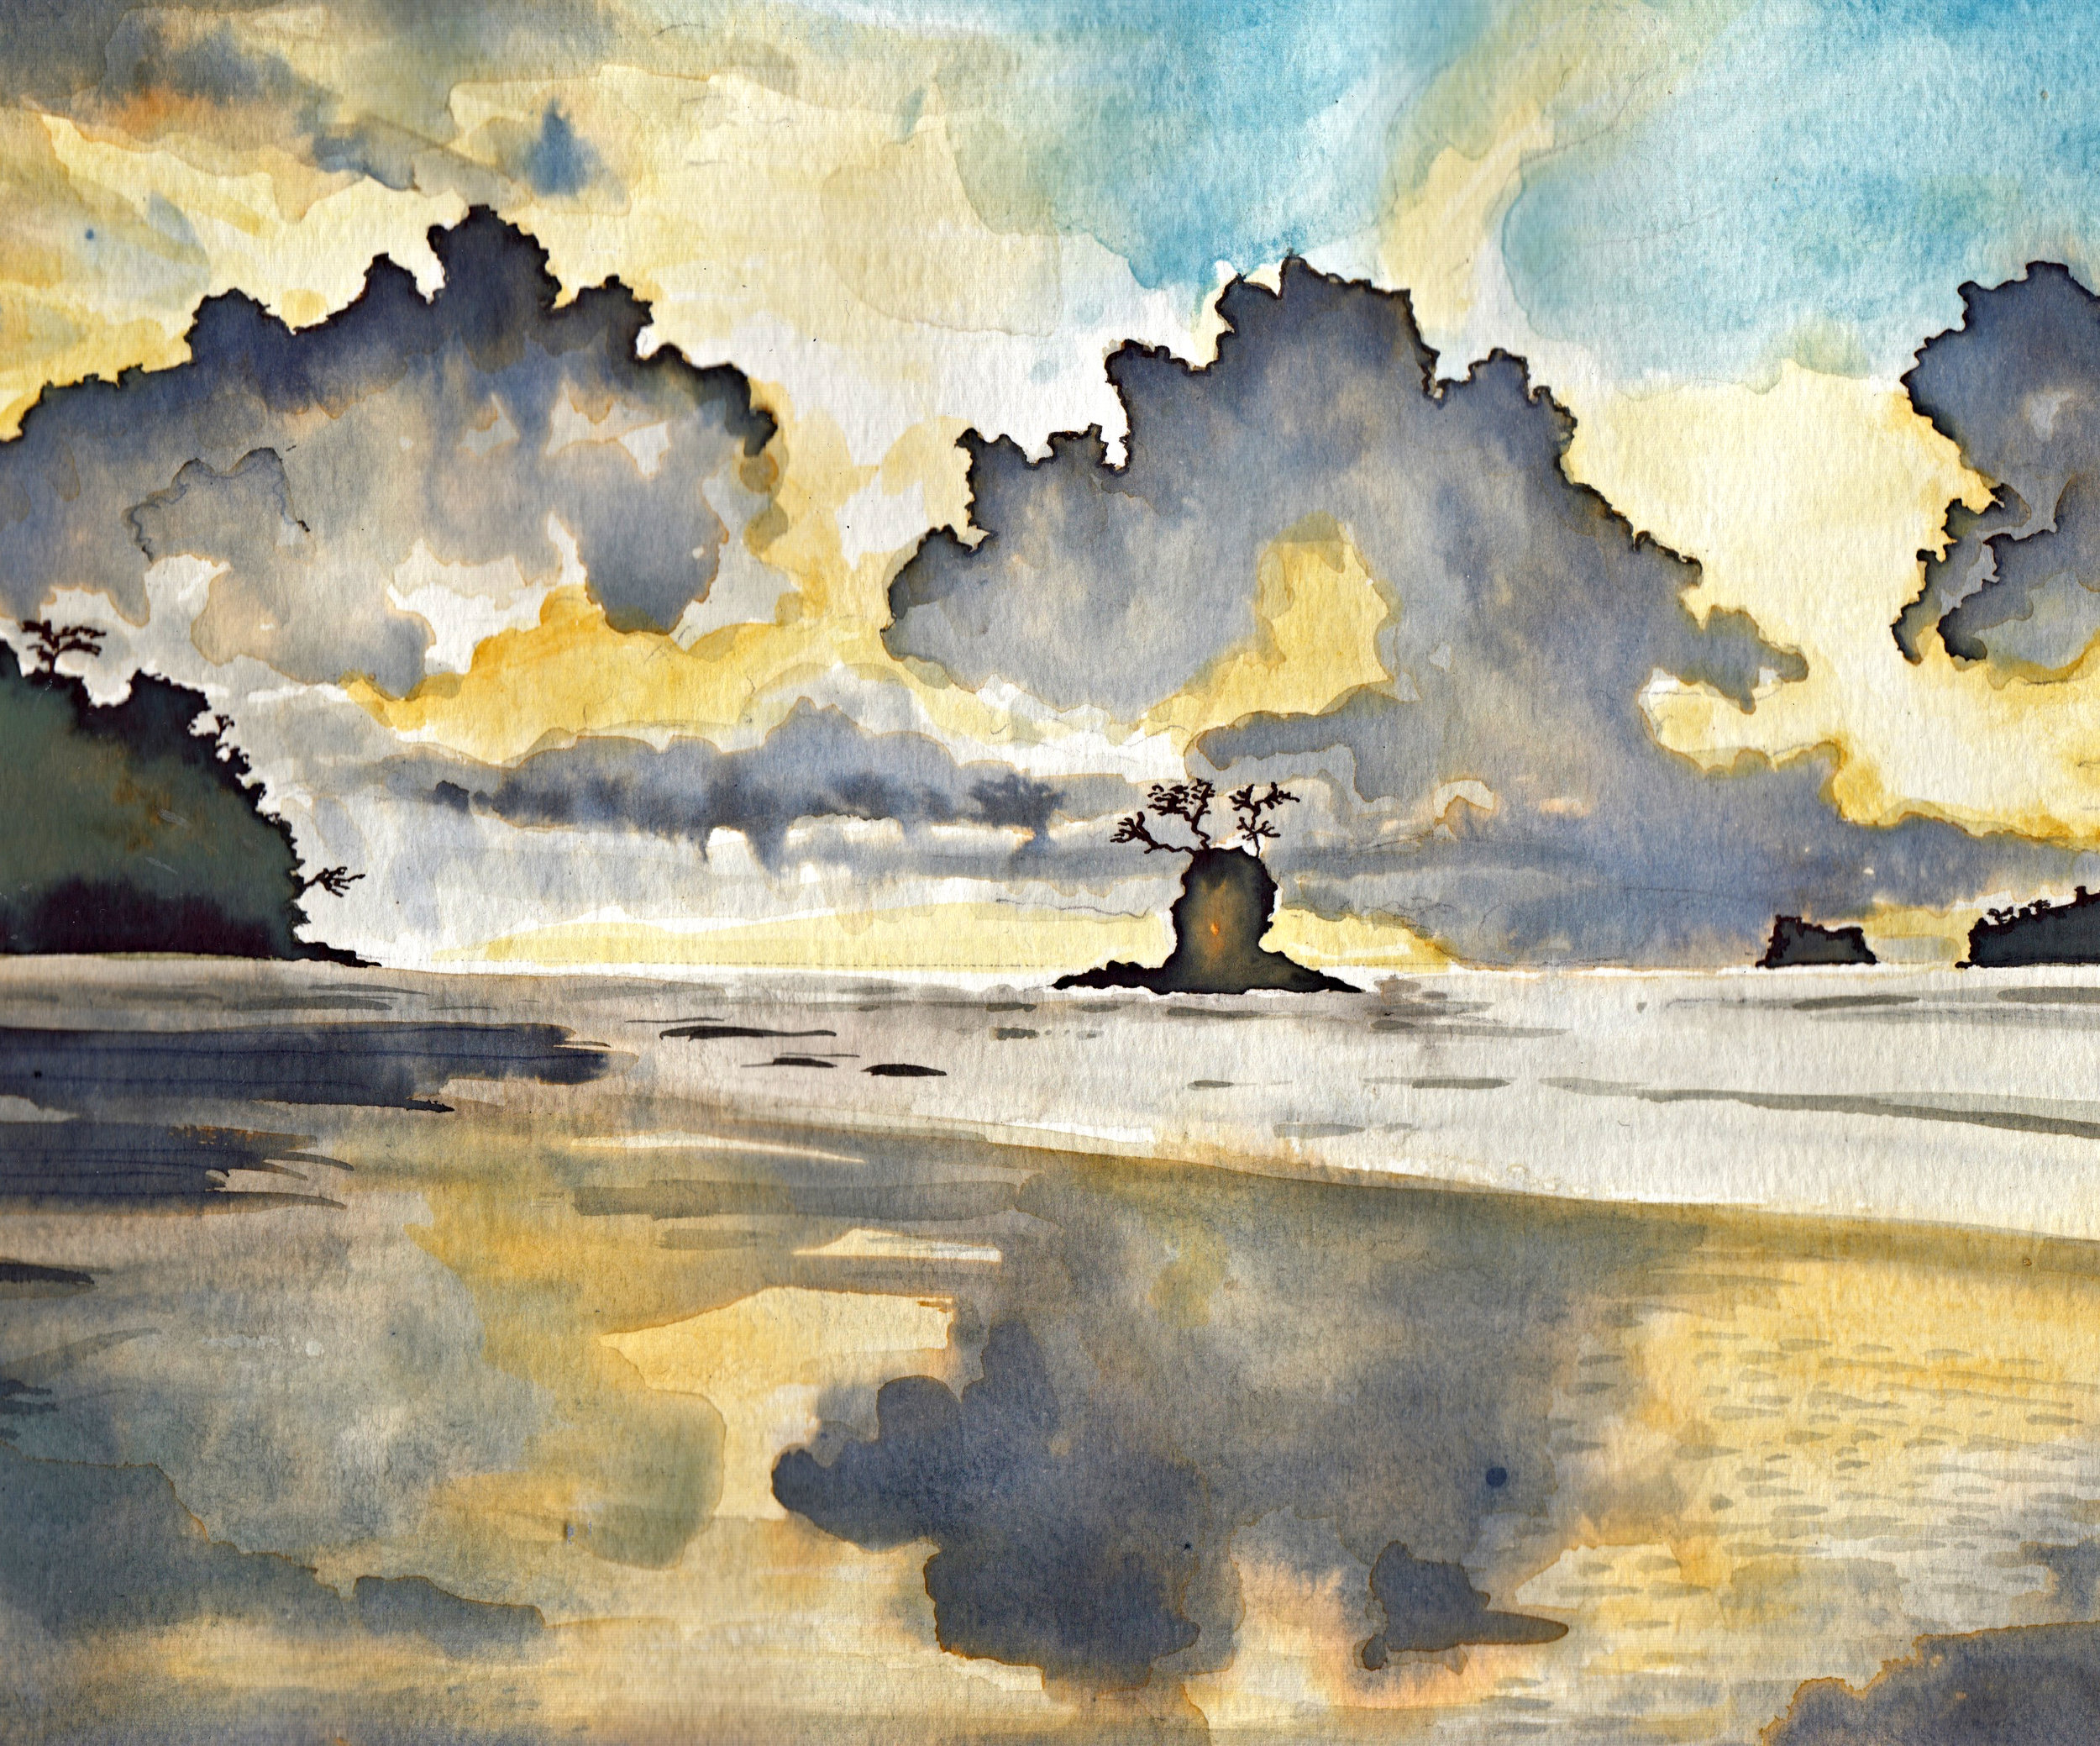 watercolour to illustrate FROM NIGHT by Clare O'Connell